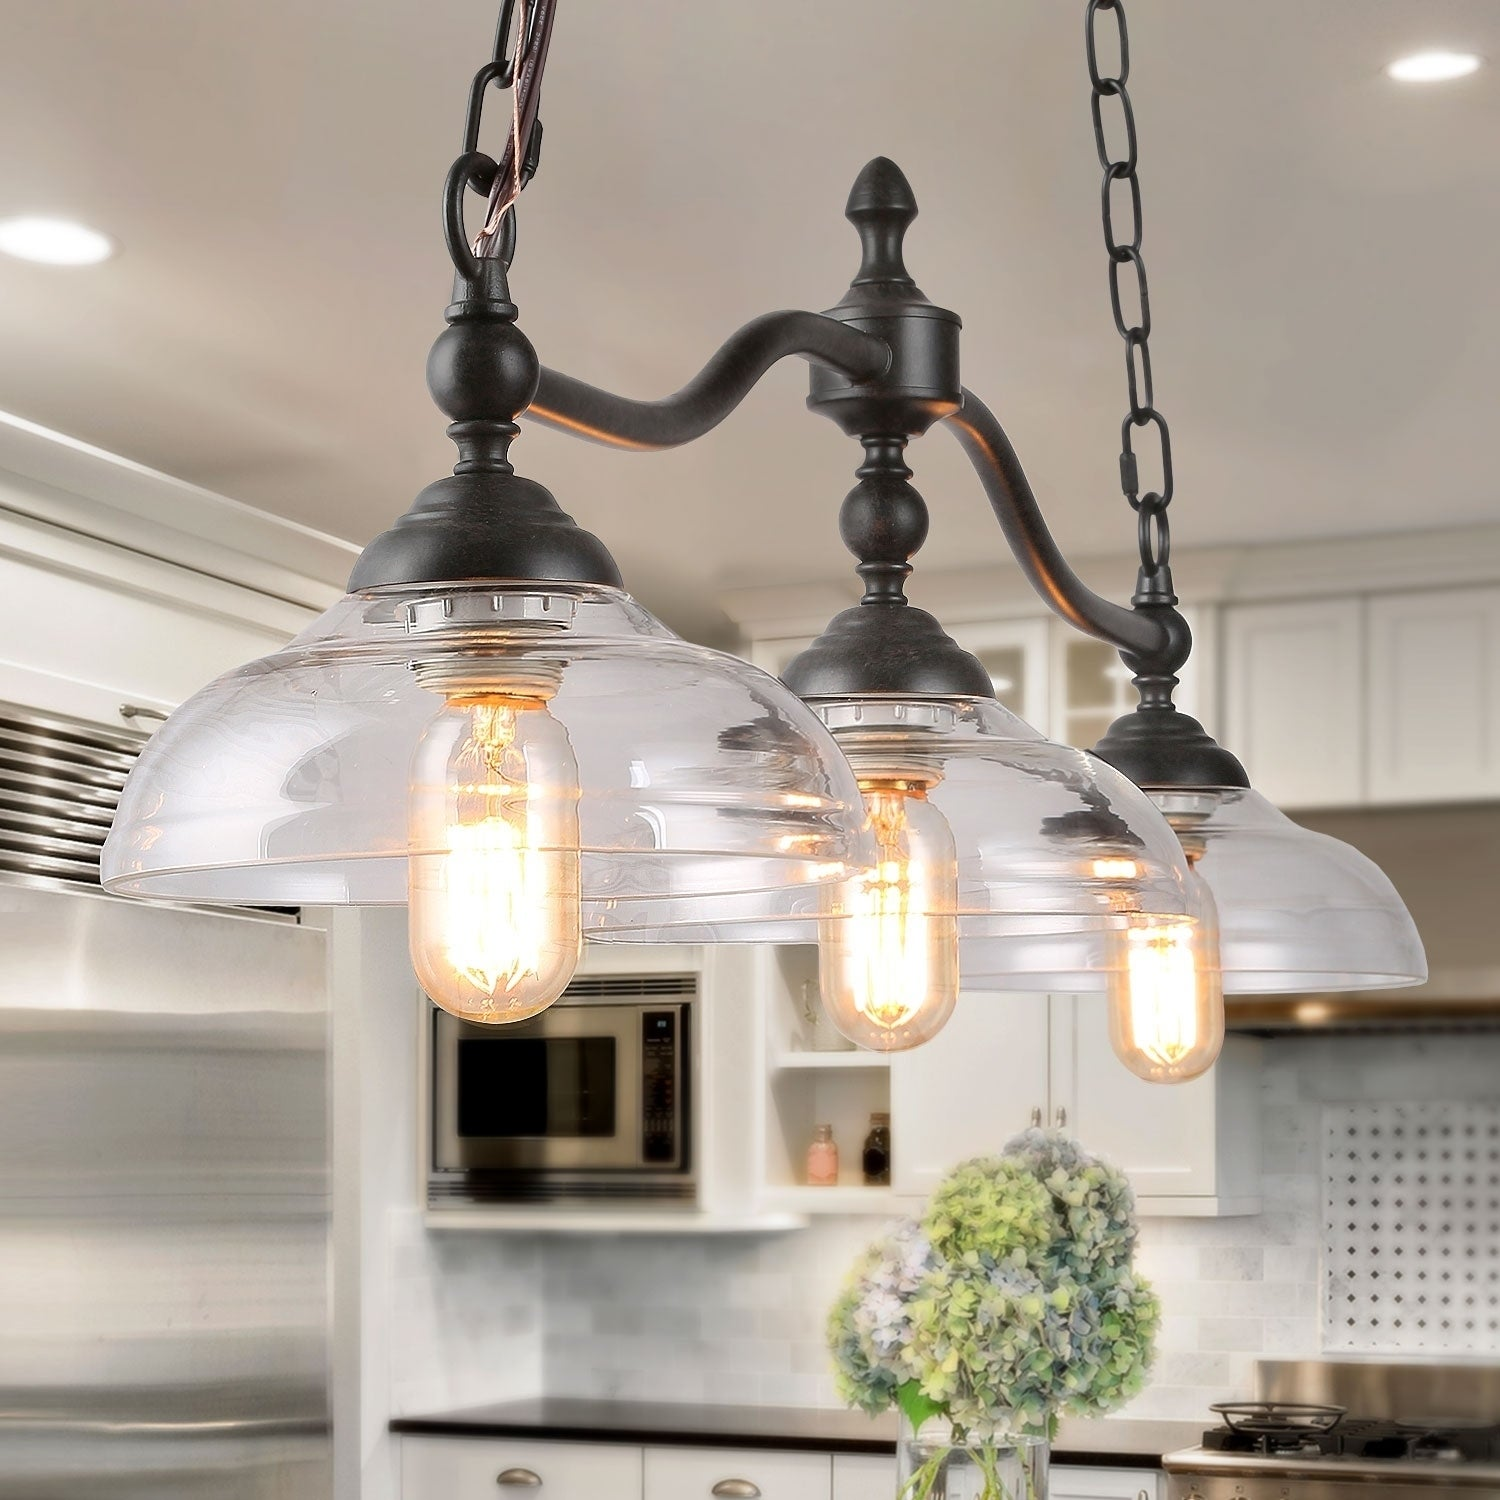 Carbon Loft Miskimins 3 Light Linear Chandeliers Kitchen Fixture With Gl Shades